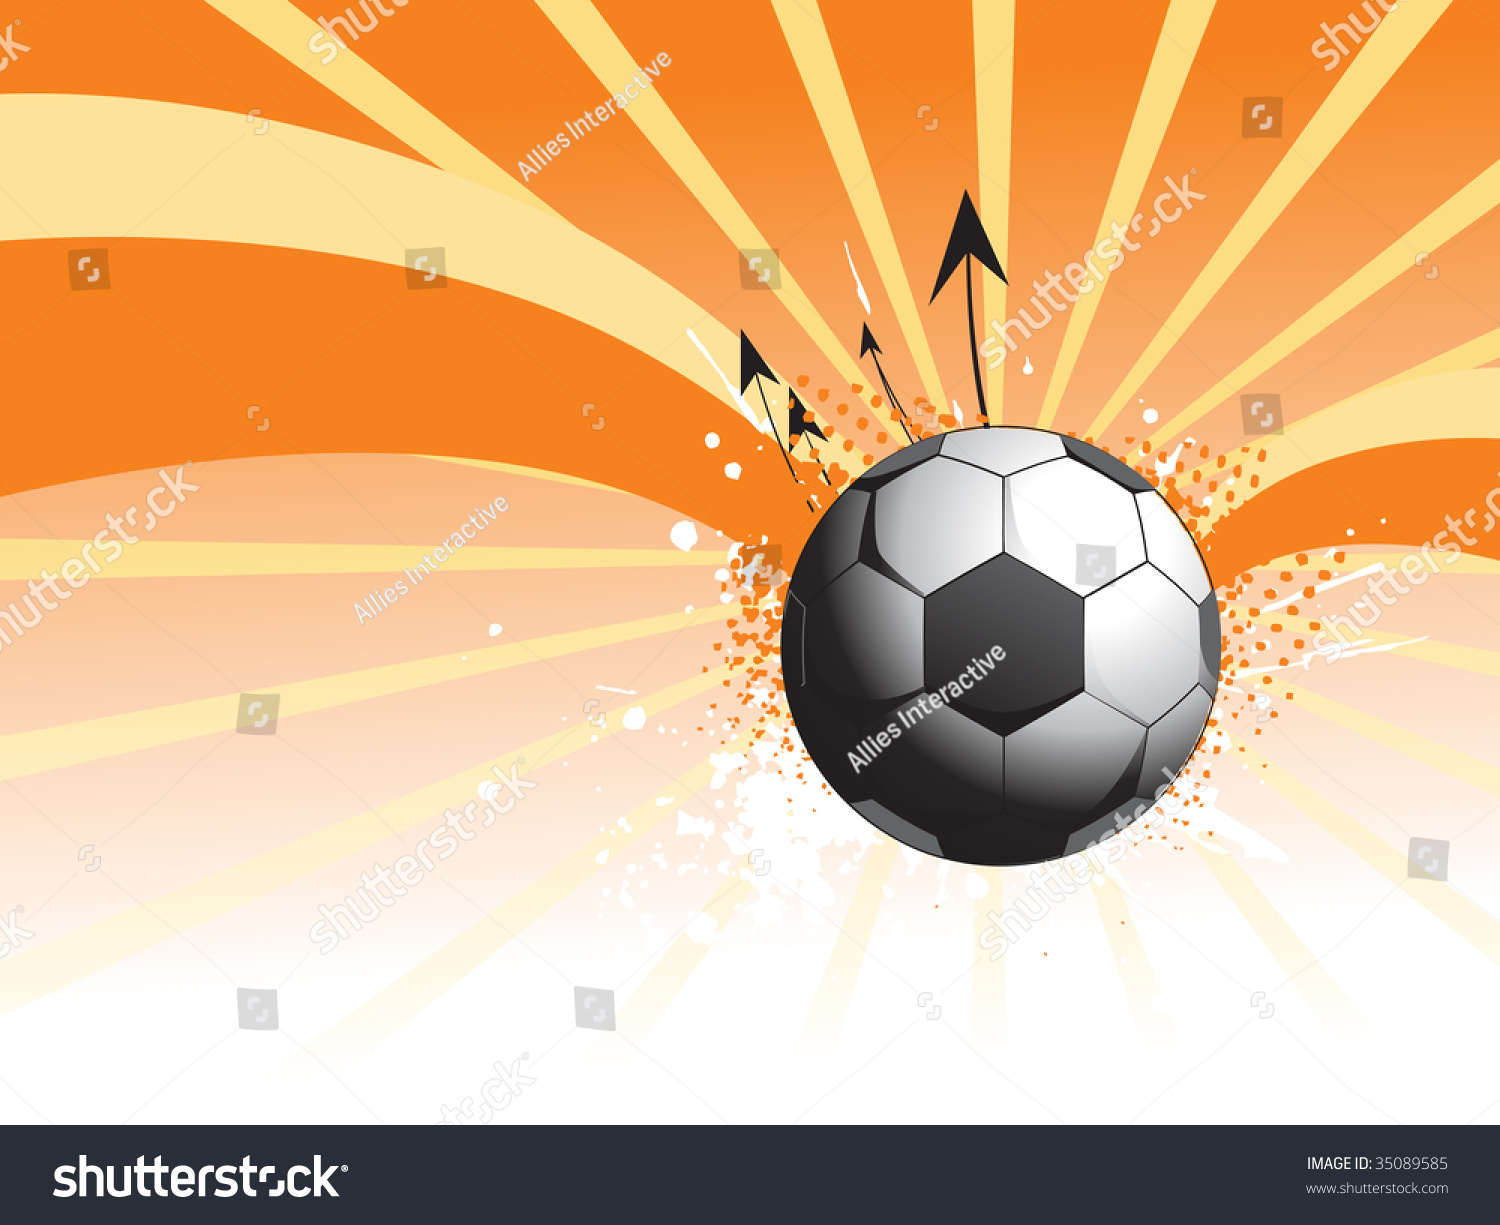 Abstract Grungy Background Volleyball Arrowhead Stock: Abstract Rays Background With Grungy Soccer And Arrowhead